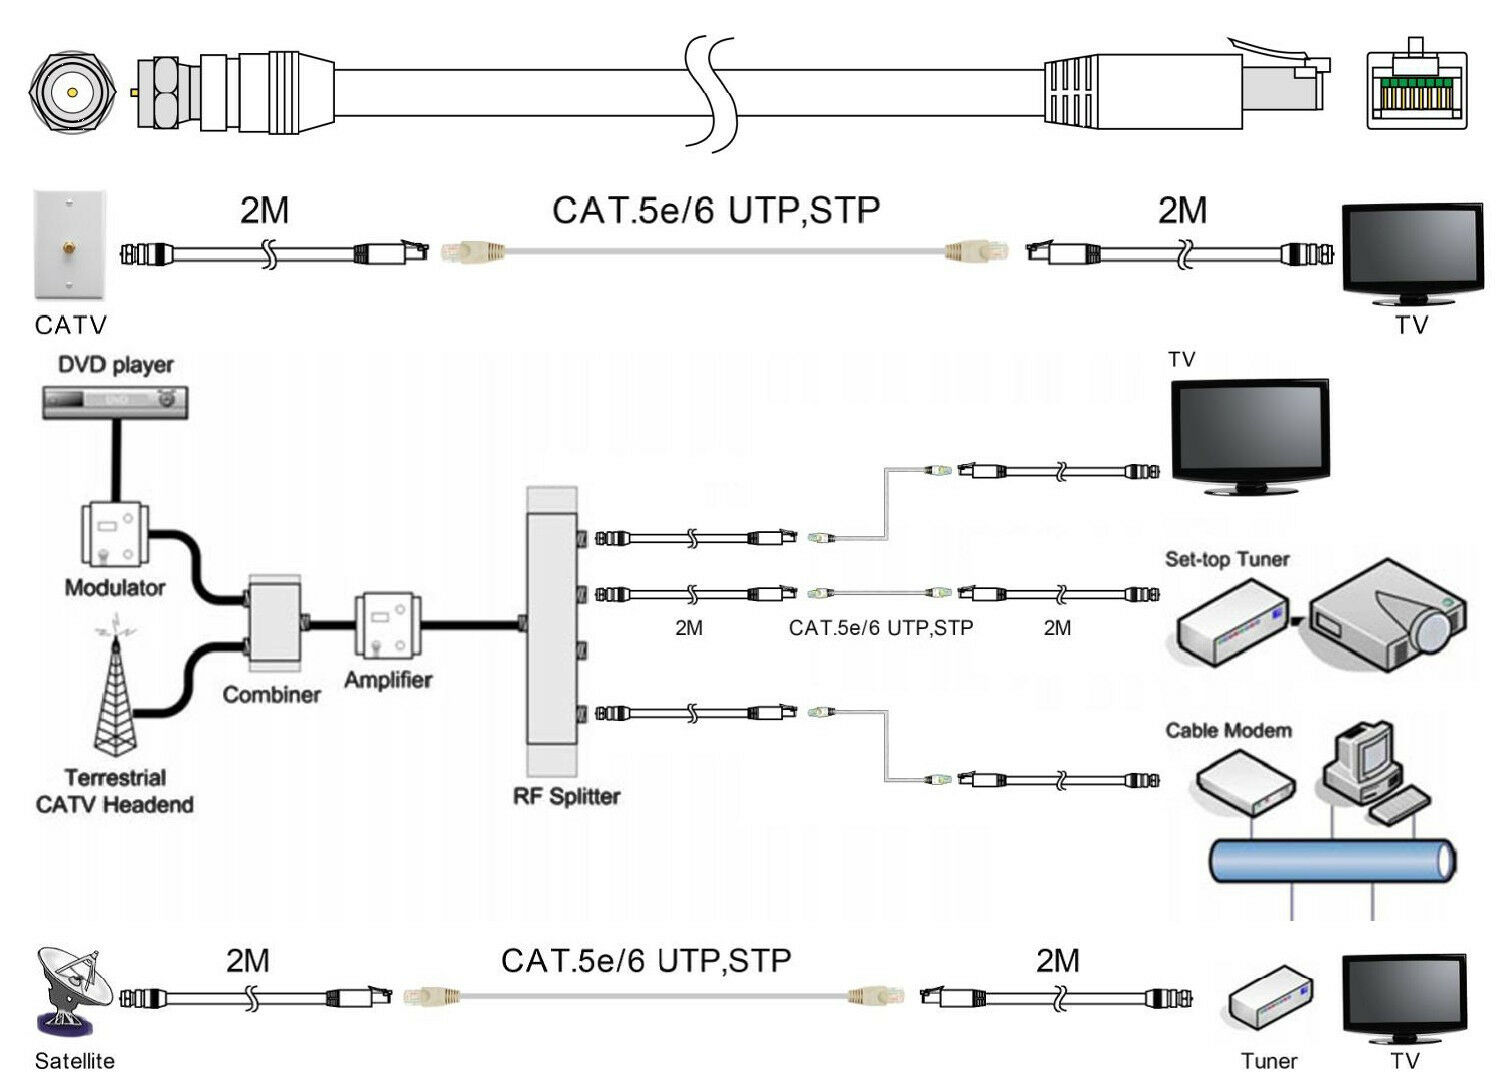 Coaxial Cable To Rj45 Wiring Diagram Trusted Diagrams Coax Schematic Rg6 Introduction Electrical U2022 Splitter